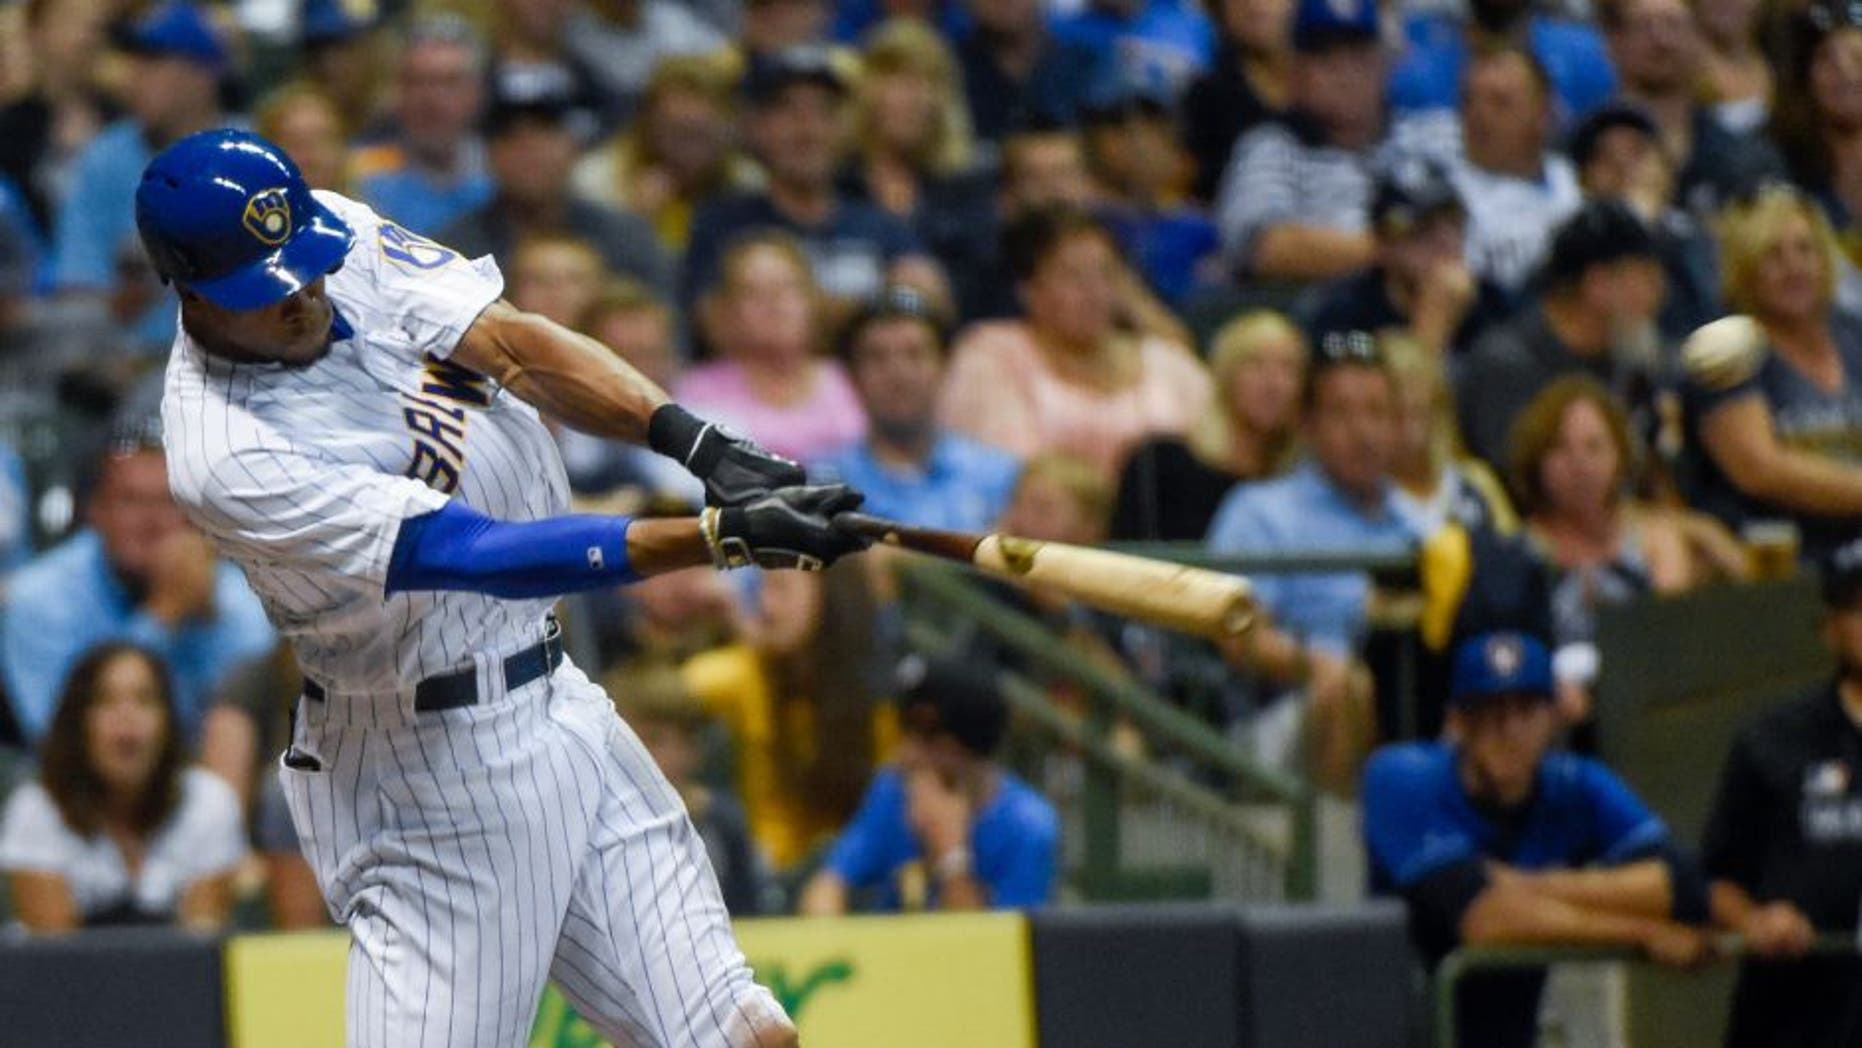 Milwaukee Brewers outfielder Keon Broxton hits an RBI double during the sixth inning against the Pittsburgh Pirates on Friday, July 29.